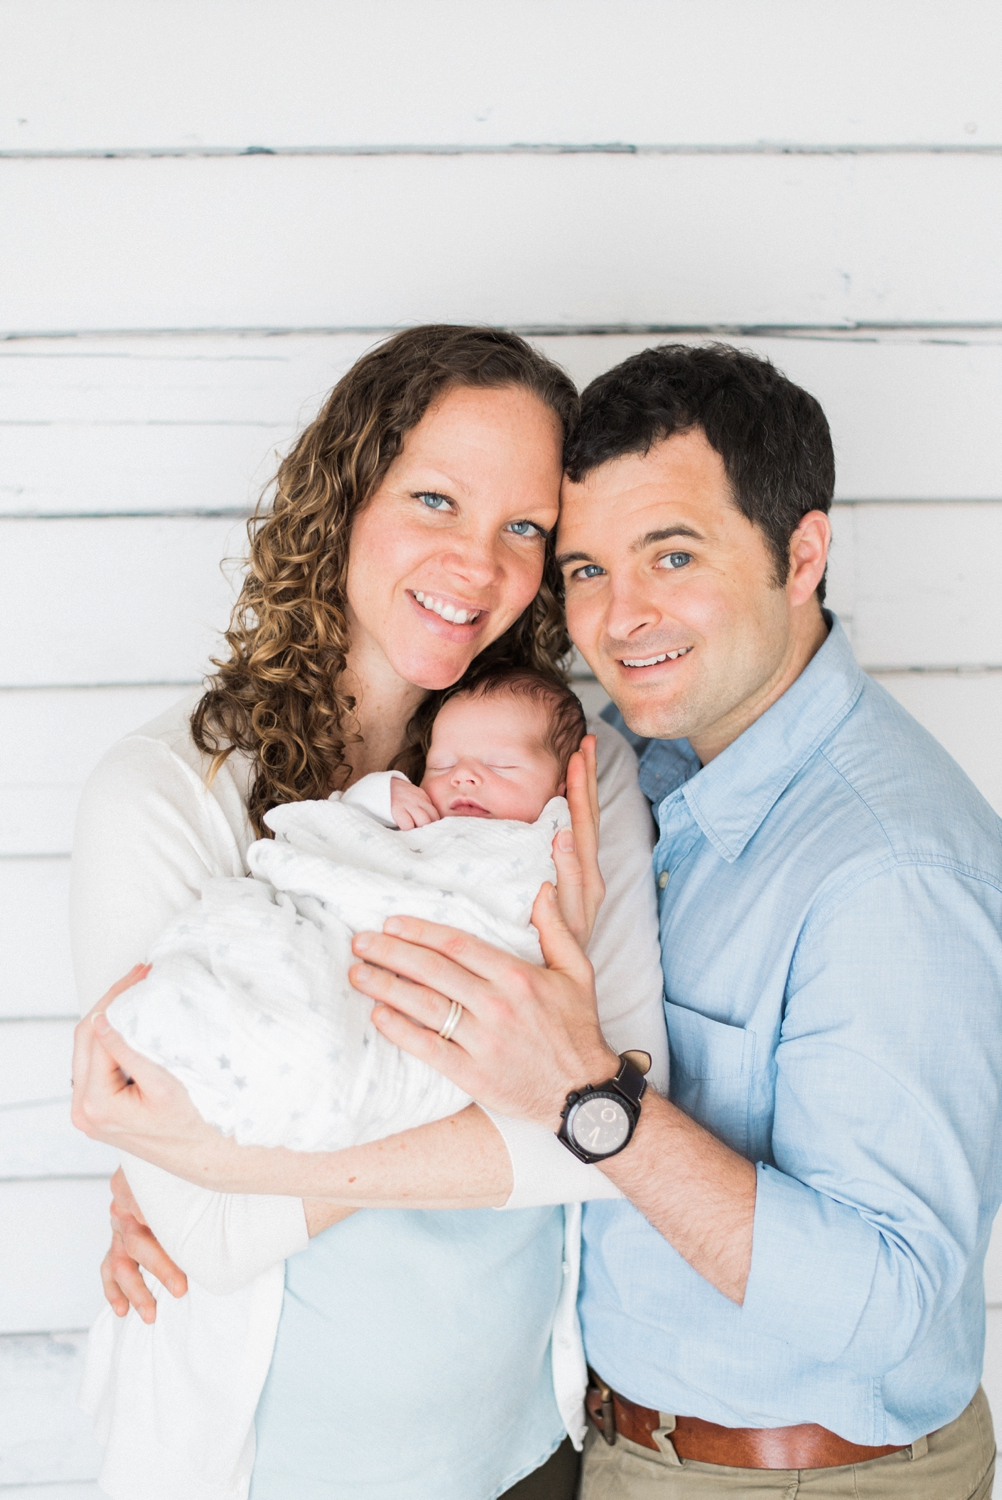 portland-newborn-family-session-shelley-marie-photo-028_cr.jpg